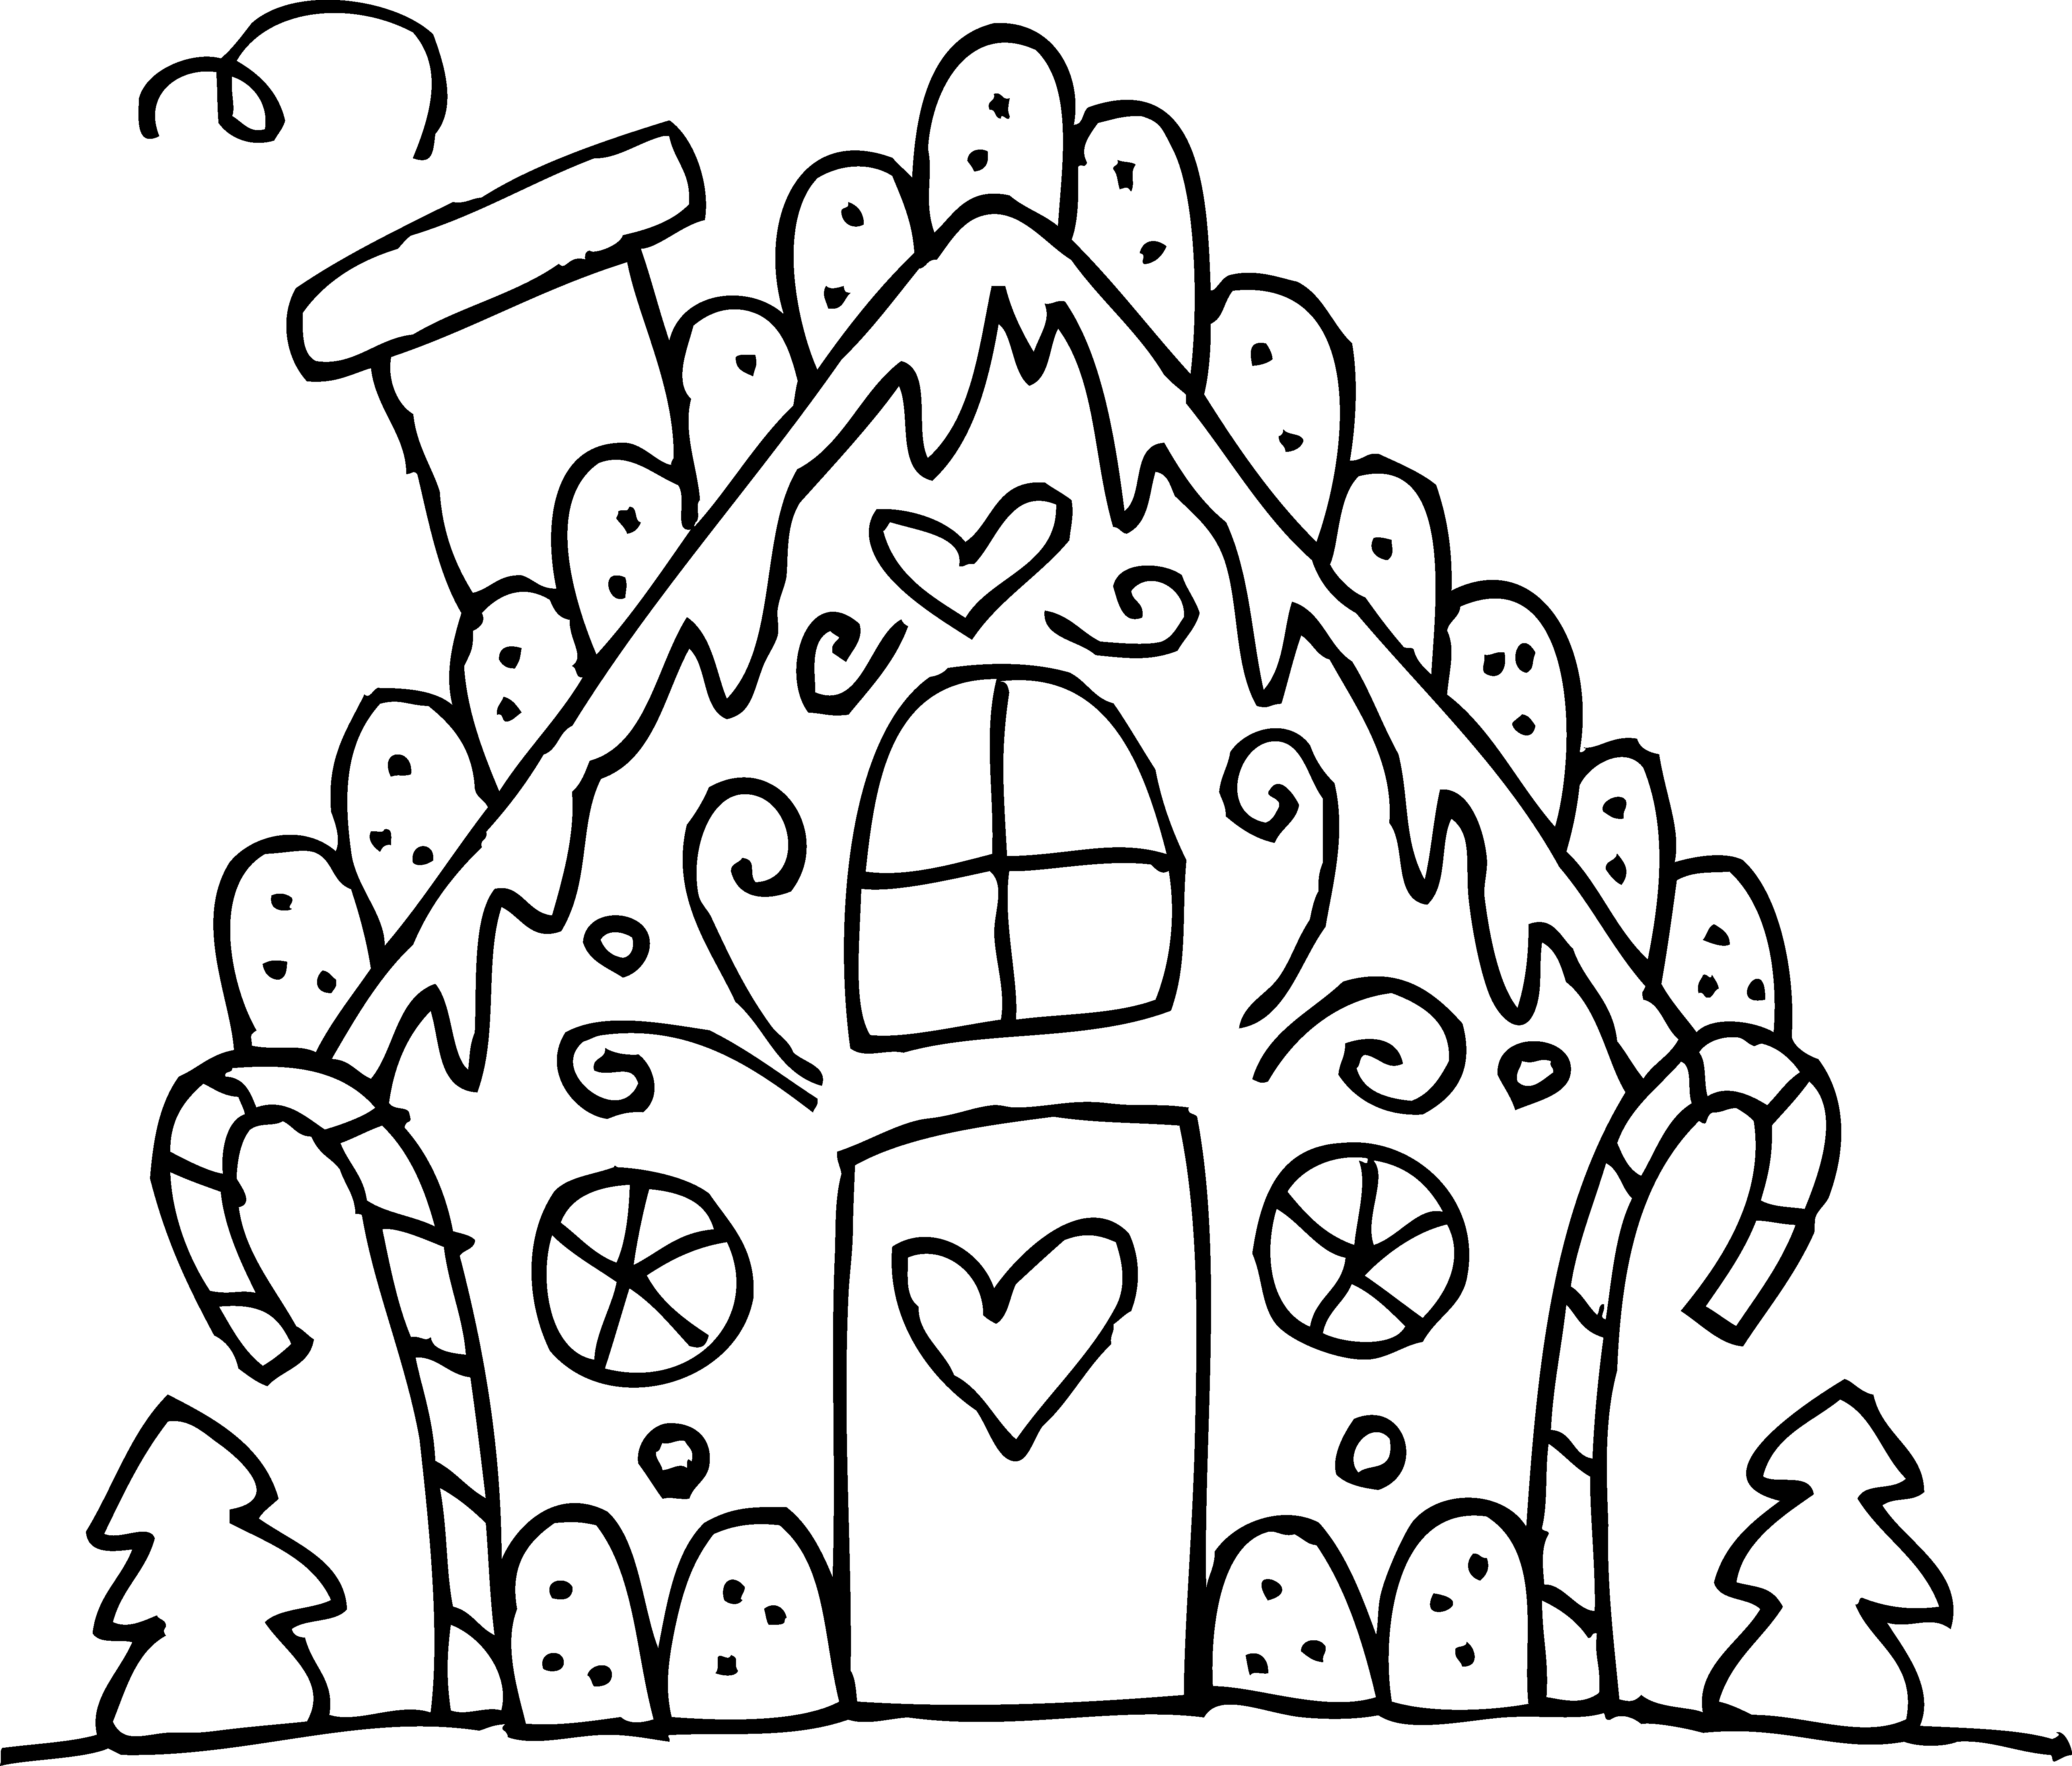 Free Clipart Gingerbread House And Men --Free clipart gingerbread house and men - ClipartFox-3